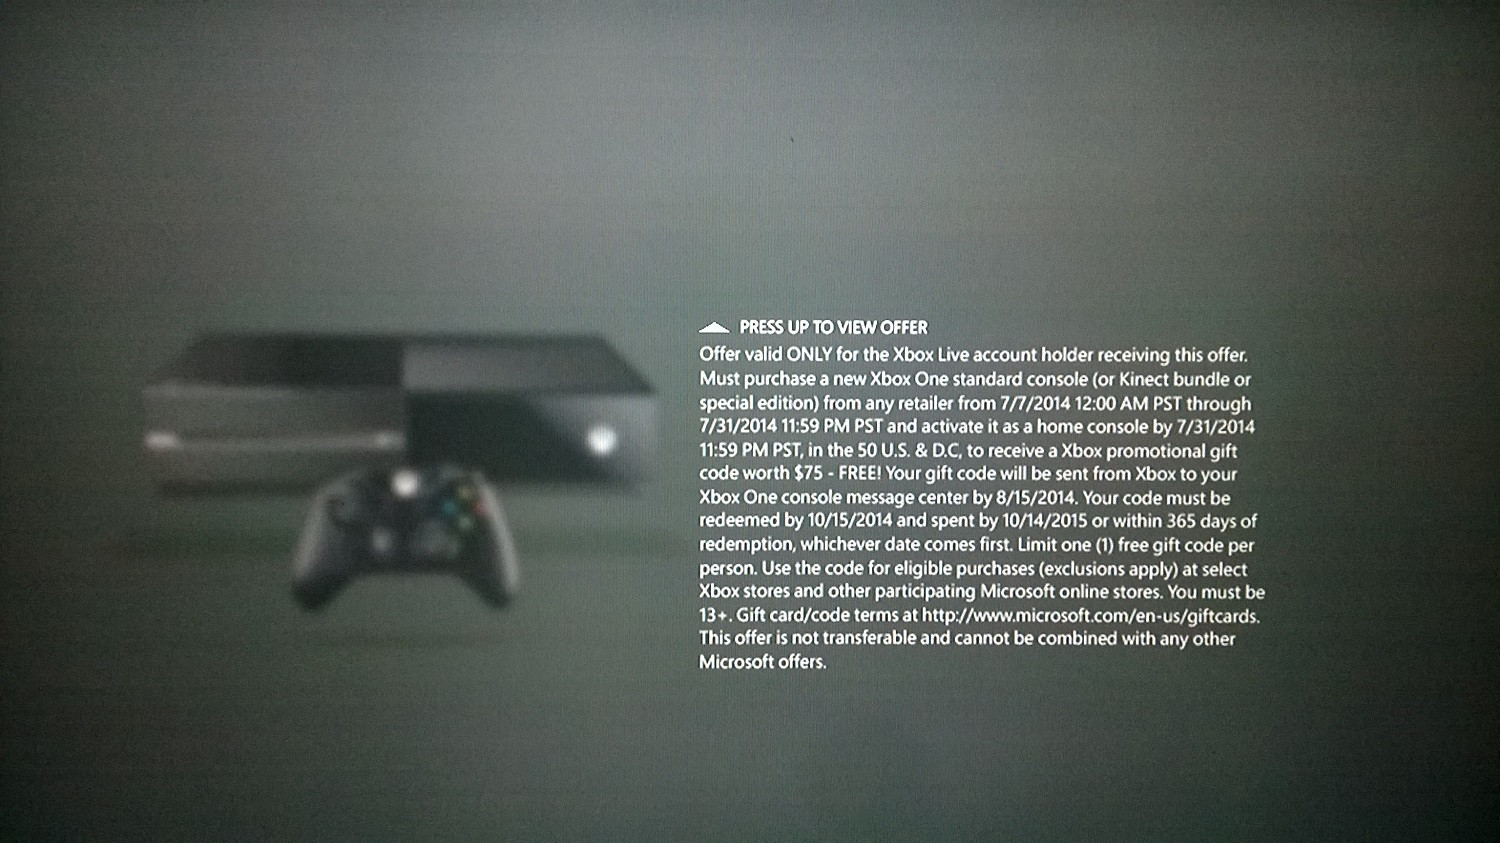 Buy An Xbox One, Get $75 From Microsoft #31630